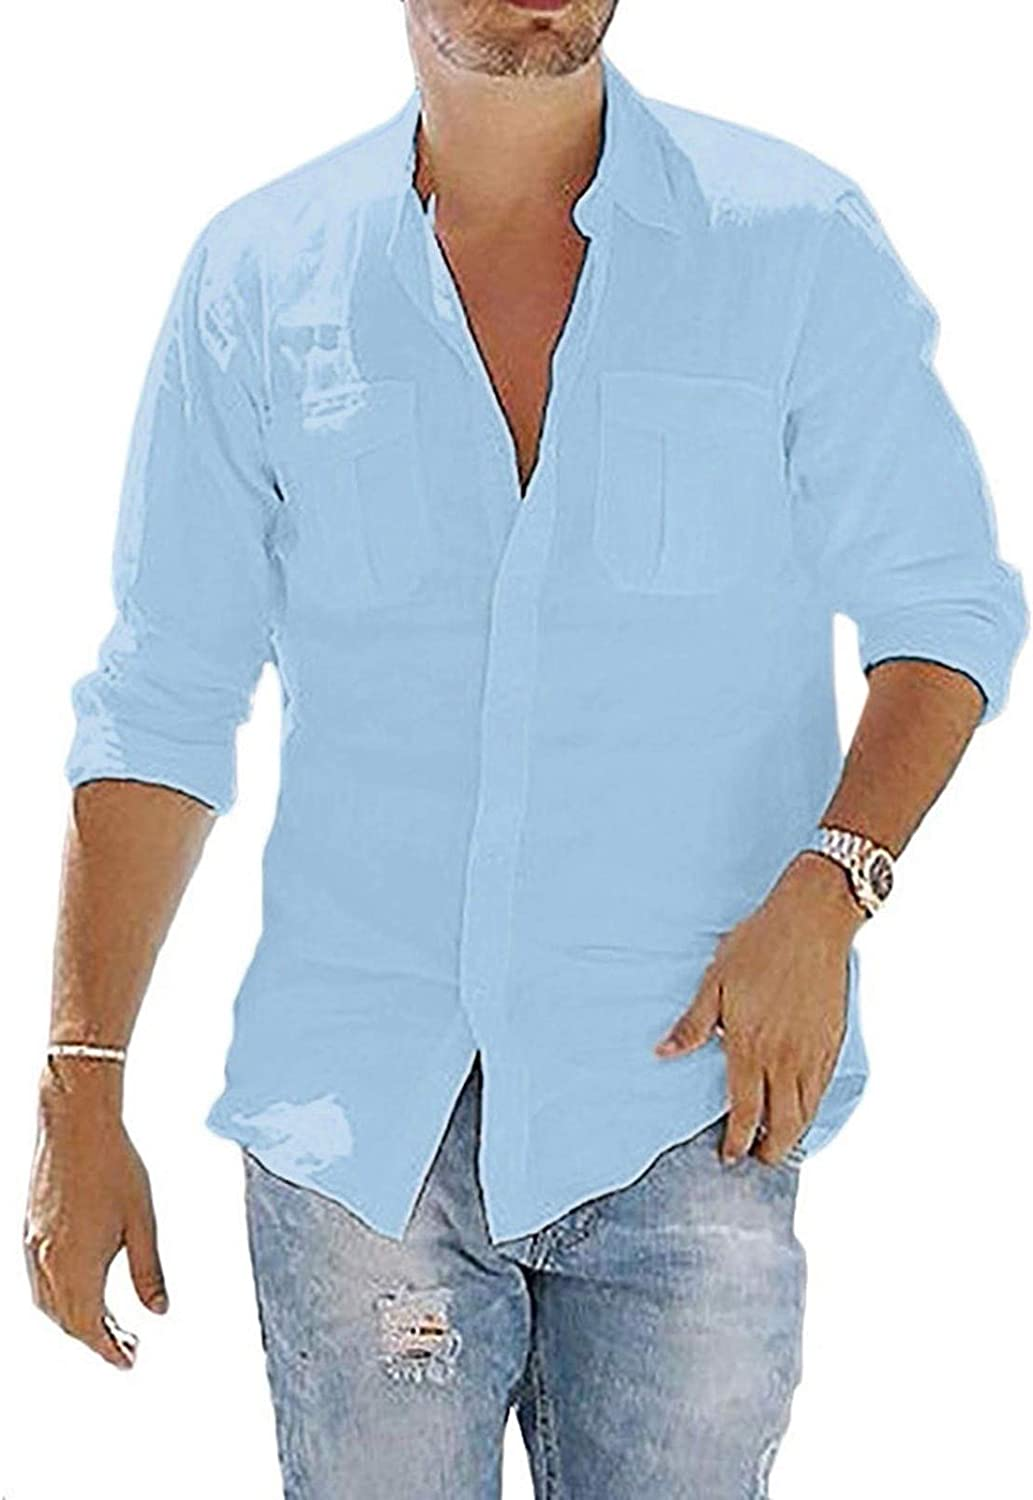 Men's Cotton Linen Henley Shirts Summer Casual Loose Long Sleeve Button Down Beach Yoga Tops Blouse with Pocket